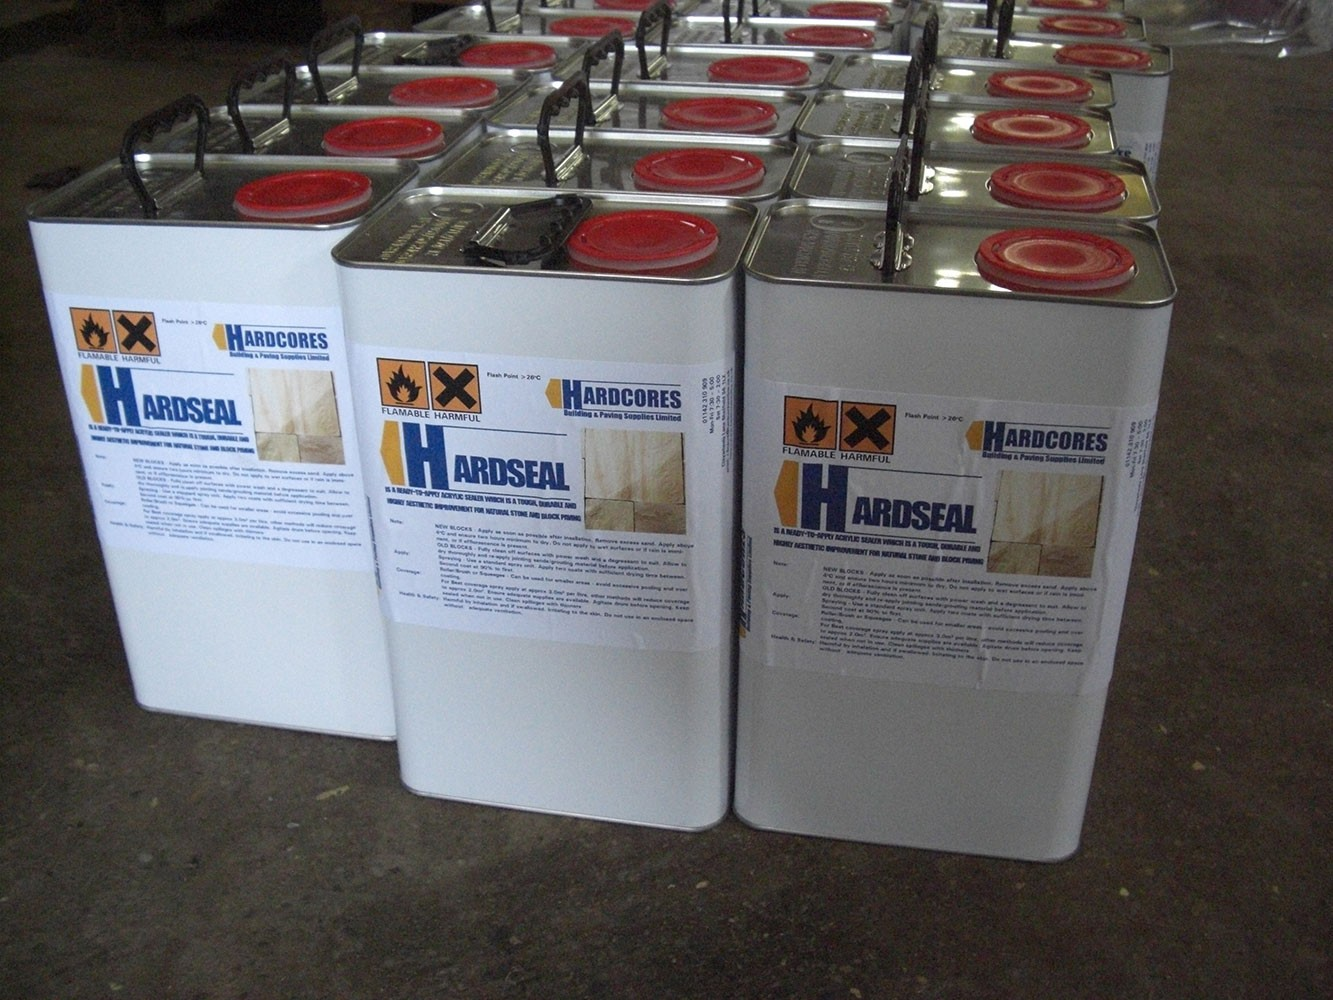 Hardcores Hardseal - Wetlook Natural, Concrete and Block Paving Sealer